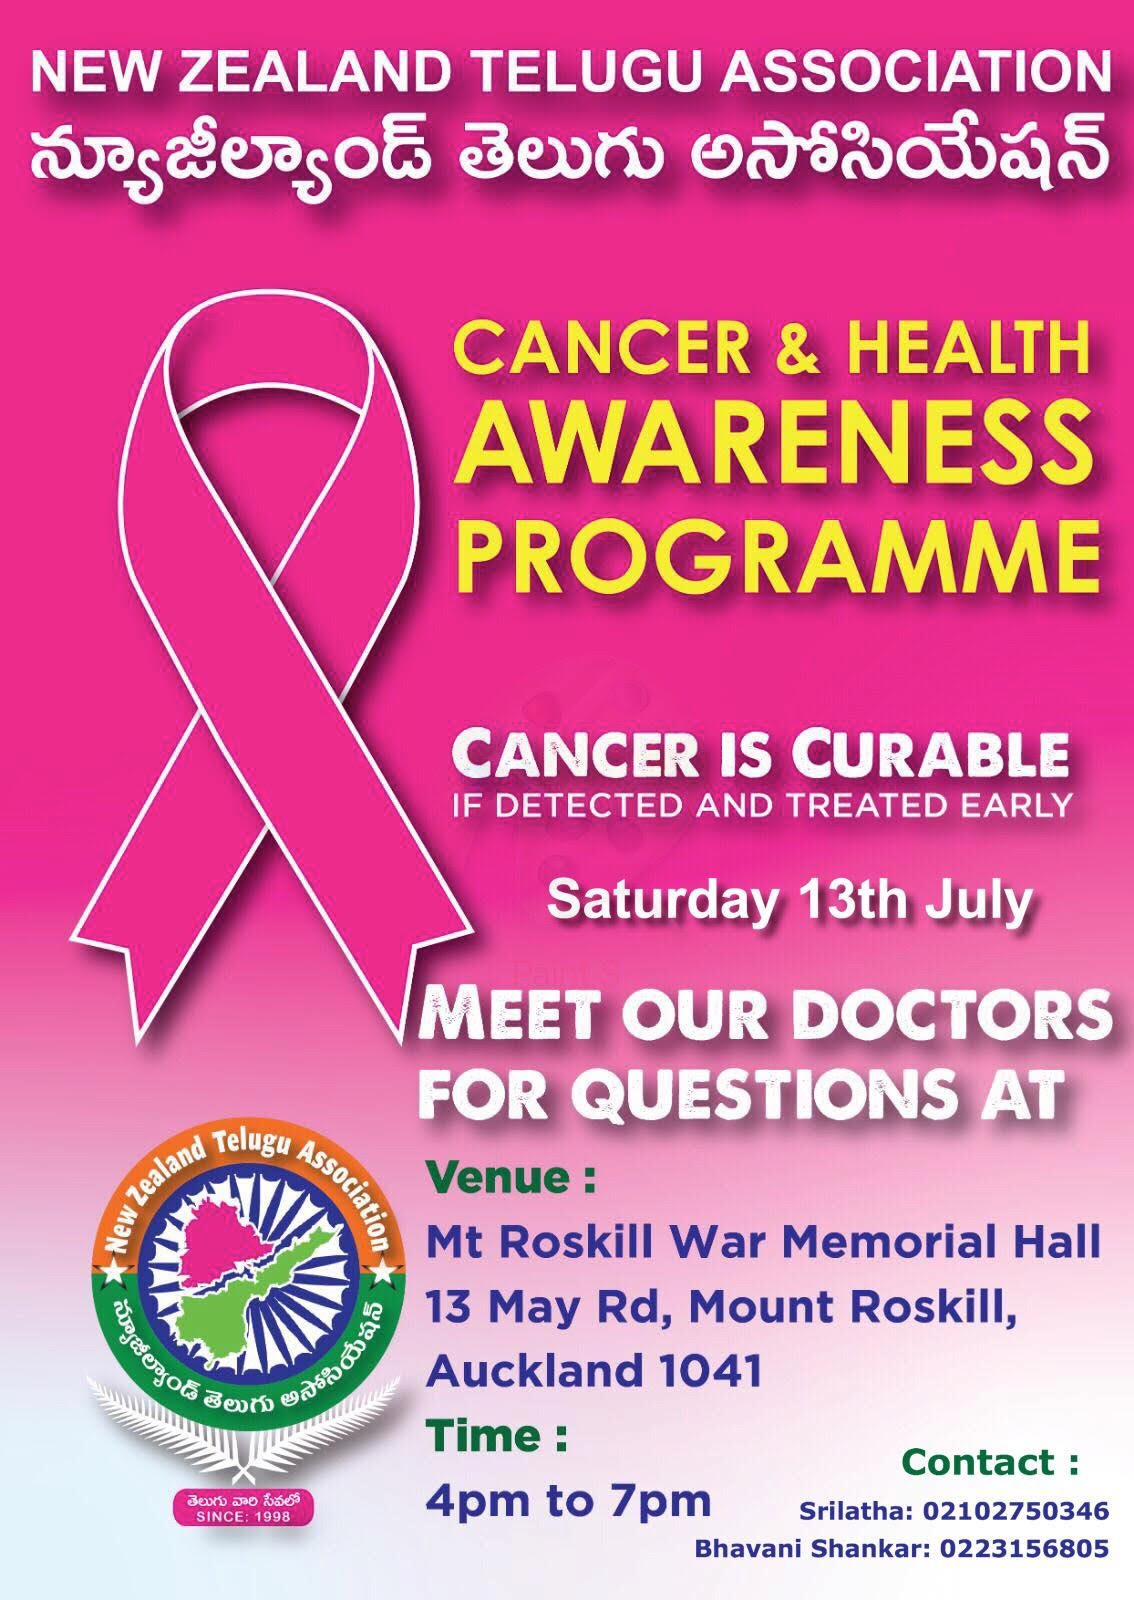 Cancer & Health Awareness Programme